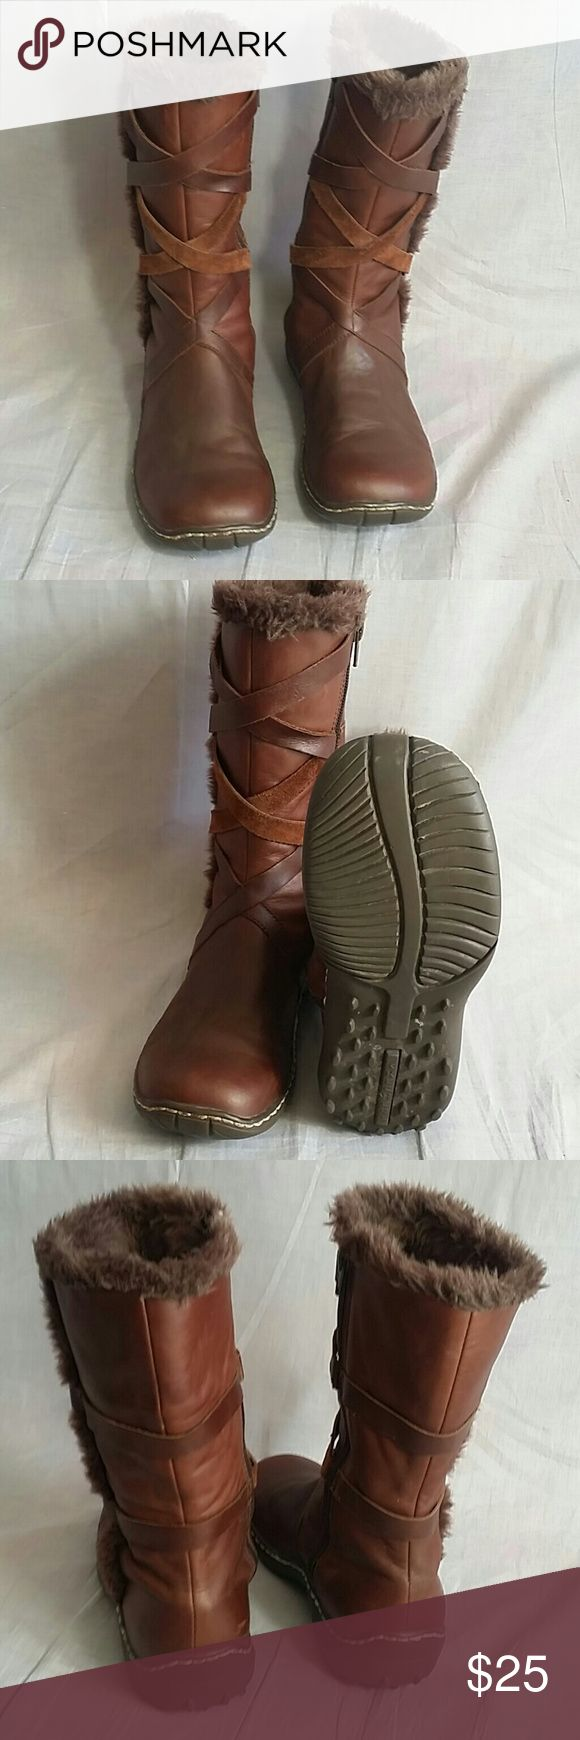 Women's Skechers Boots Shoes Brown 5.5 M Leather Item is in a good condition. Skechers Shoes Winter & Rain Boots